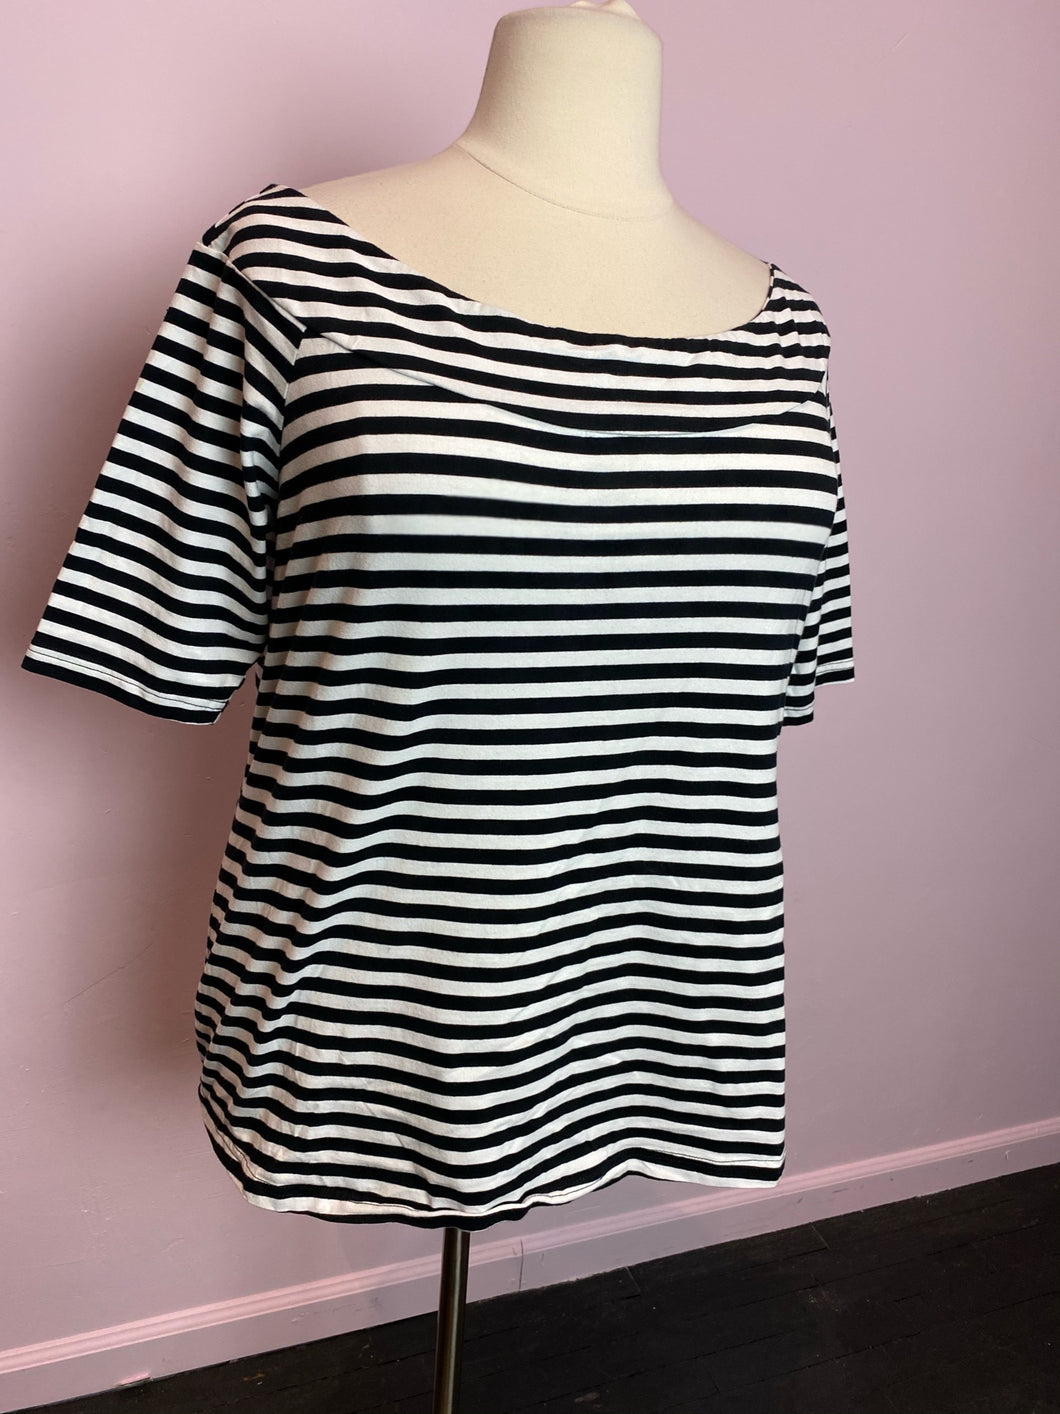 Black and White Striped Mock-Marilyn Collar City Chic Top, Size 22